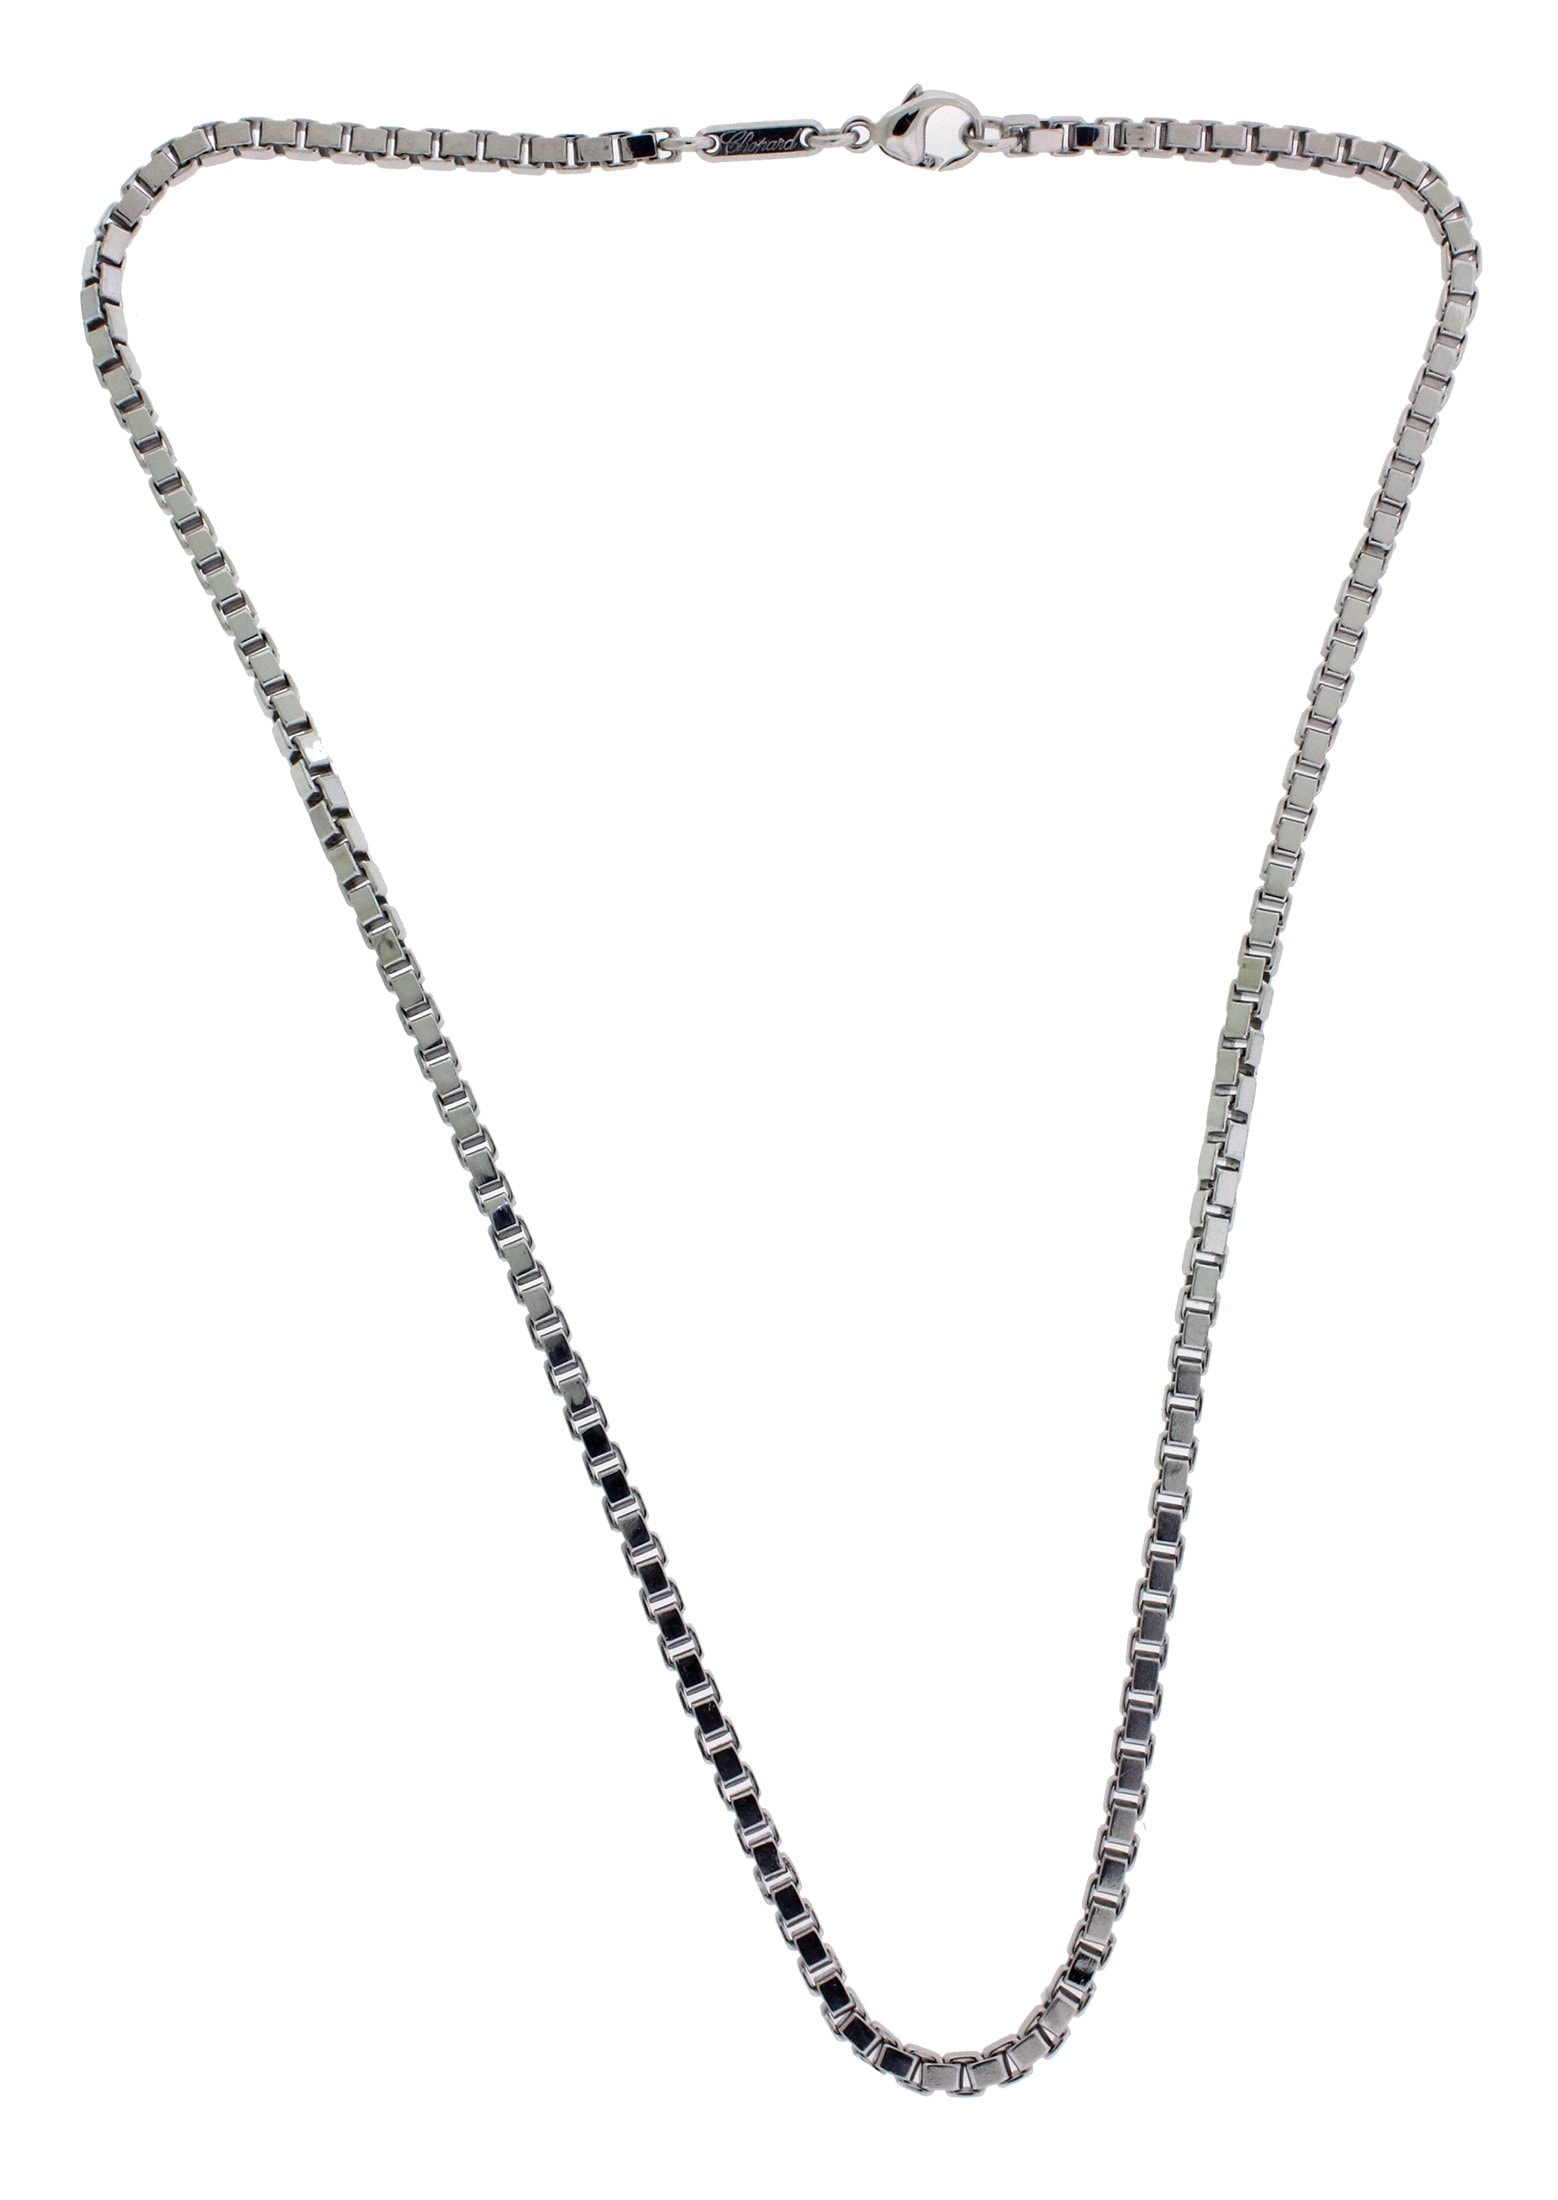 Chopard 2 9mm Box Chain Necklace In 18k White Gold 16 5